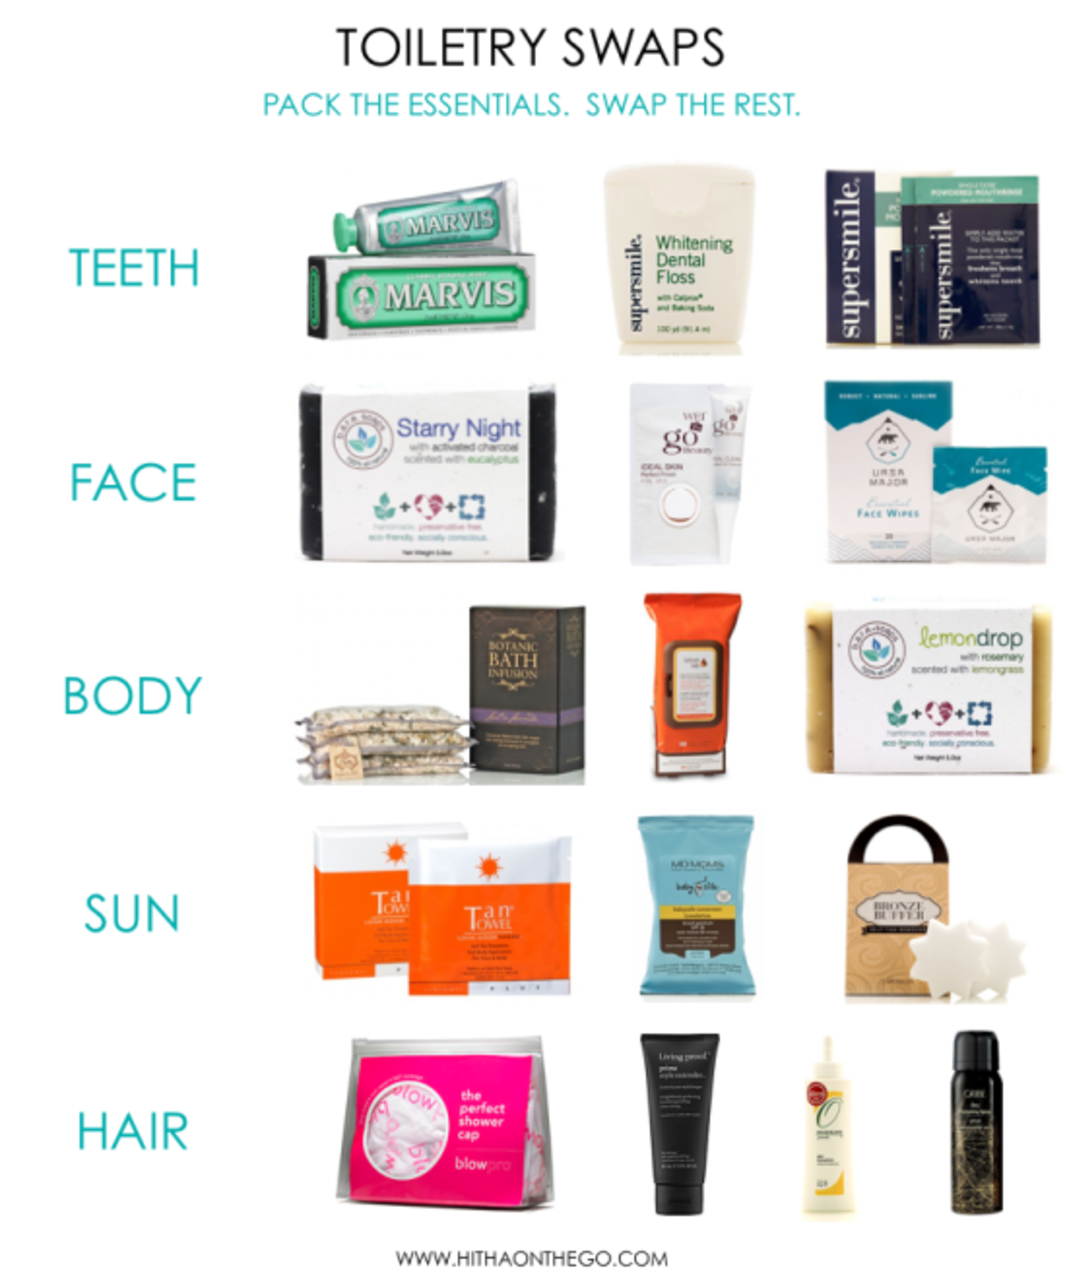 how to pack toiletries for a flight